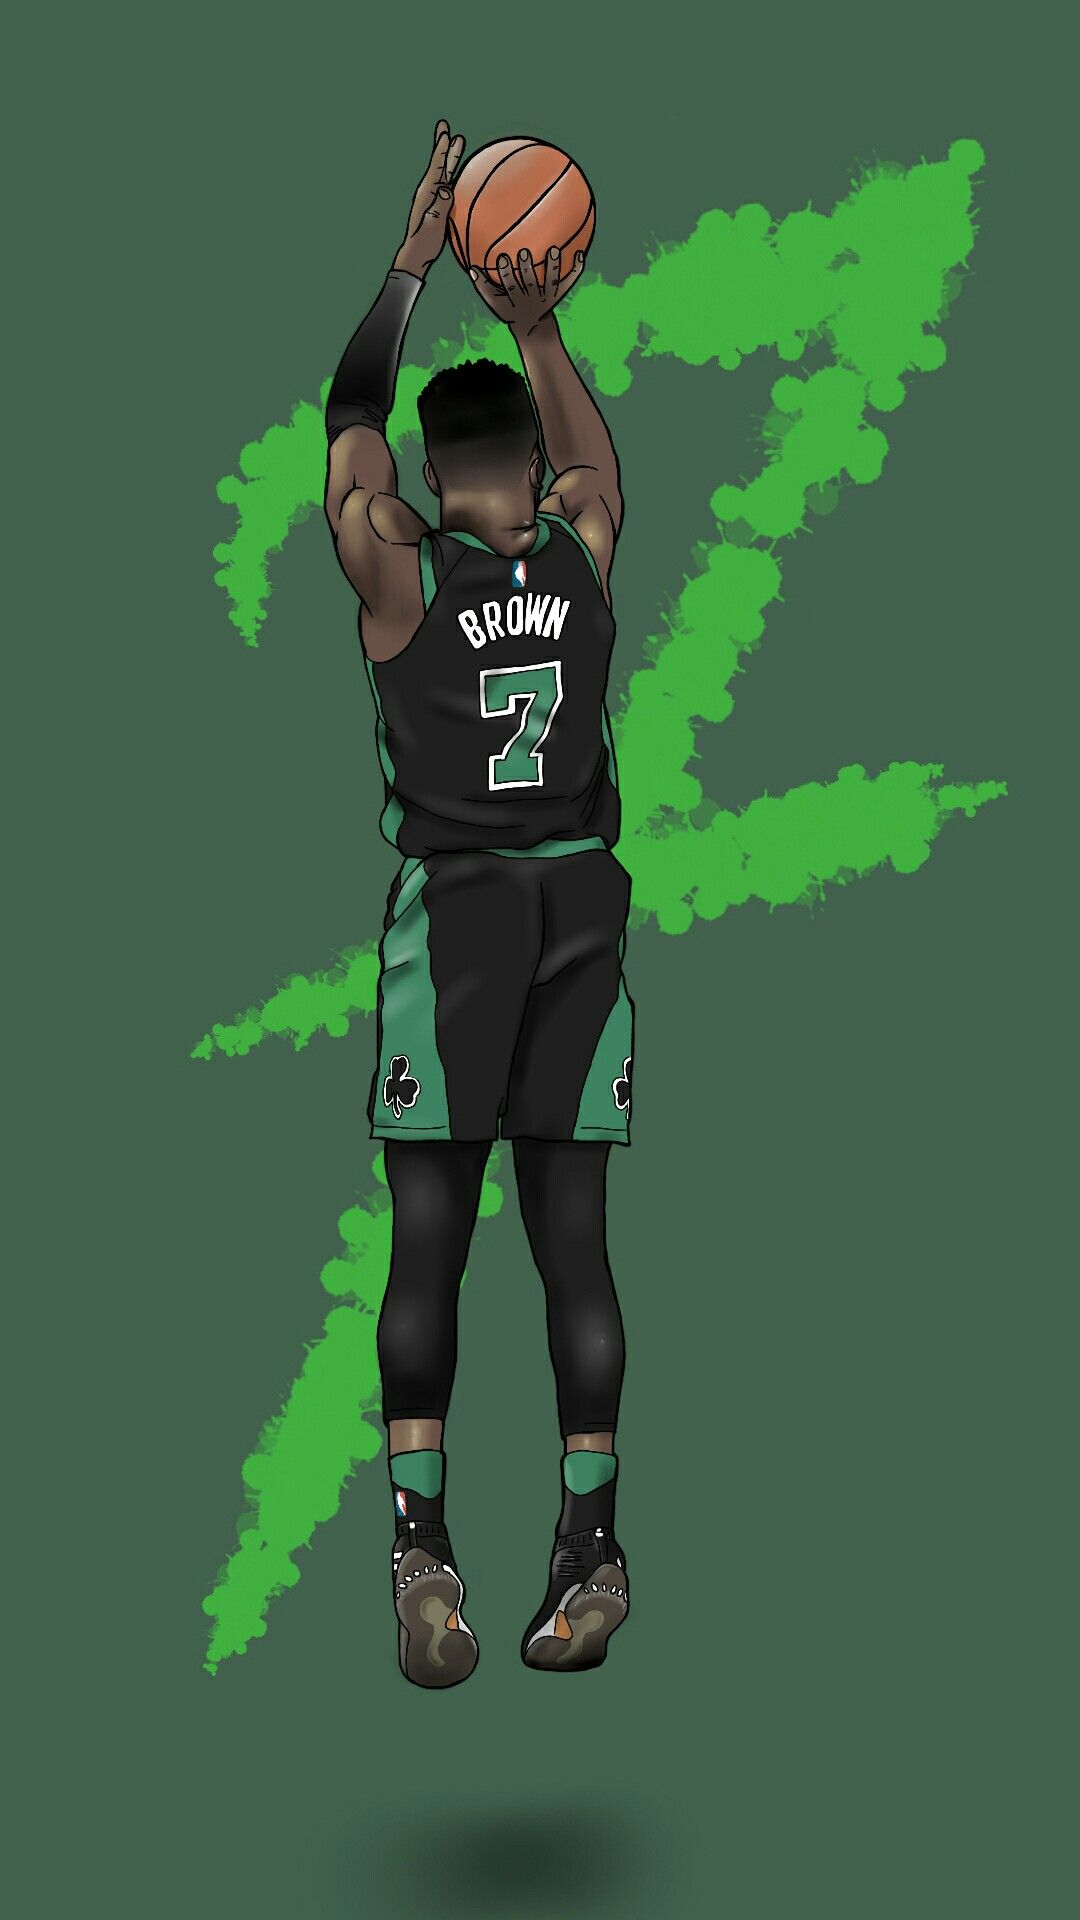 Jaylen Brown From Boston Celtics Phone Wallpaper By Socent Visit The Instagram Socentism